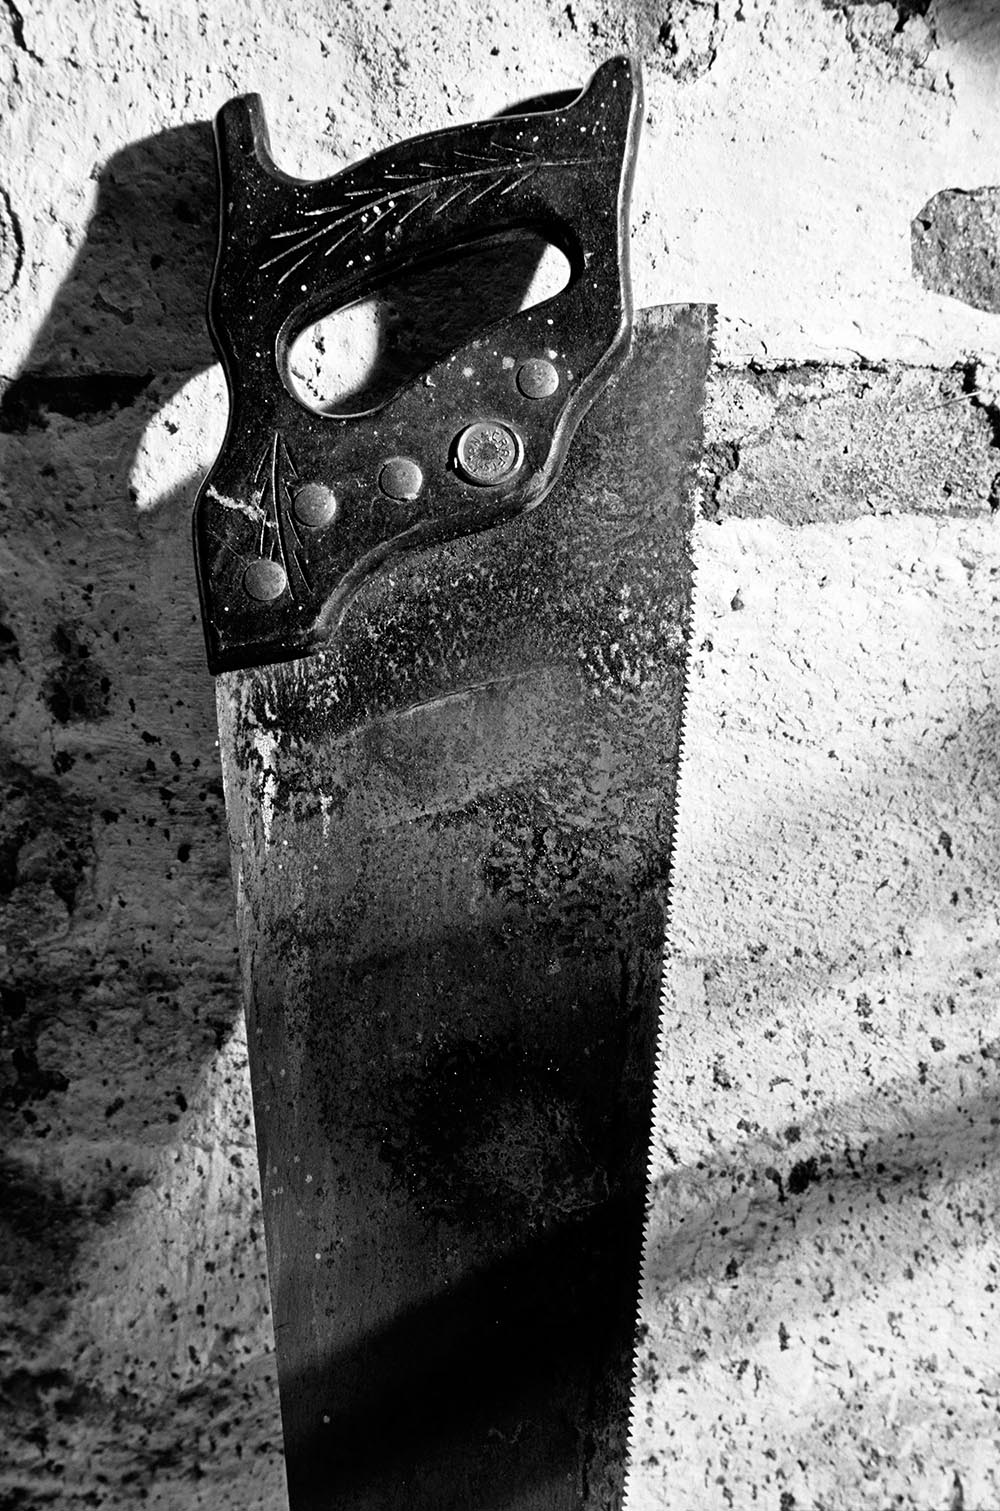 Black and white photograph of an old rusted saw with worn down teeth.